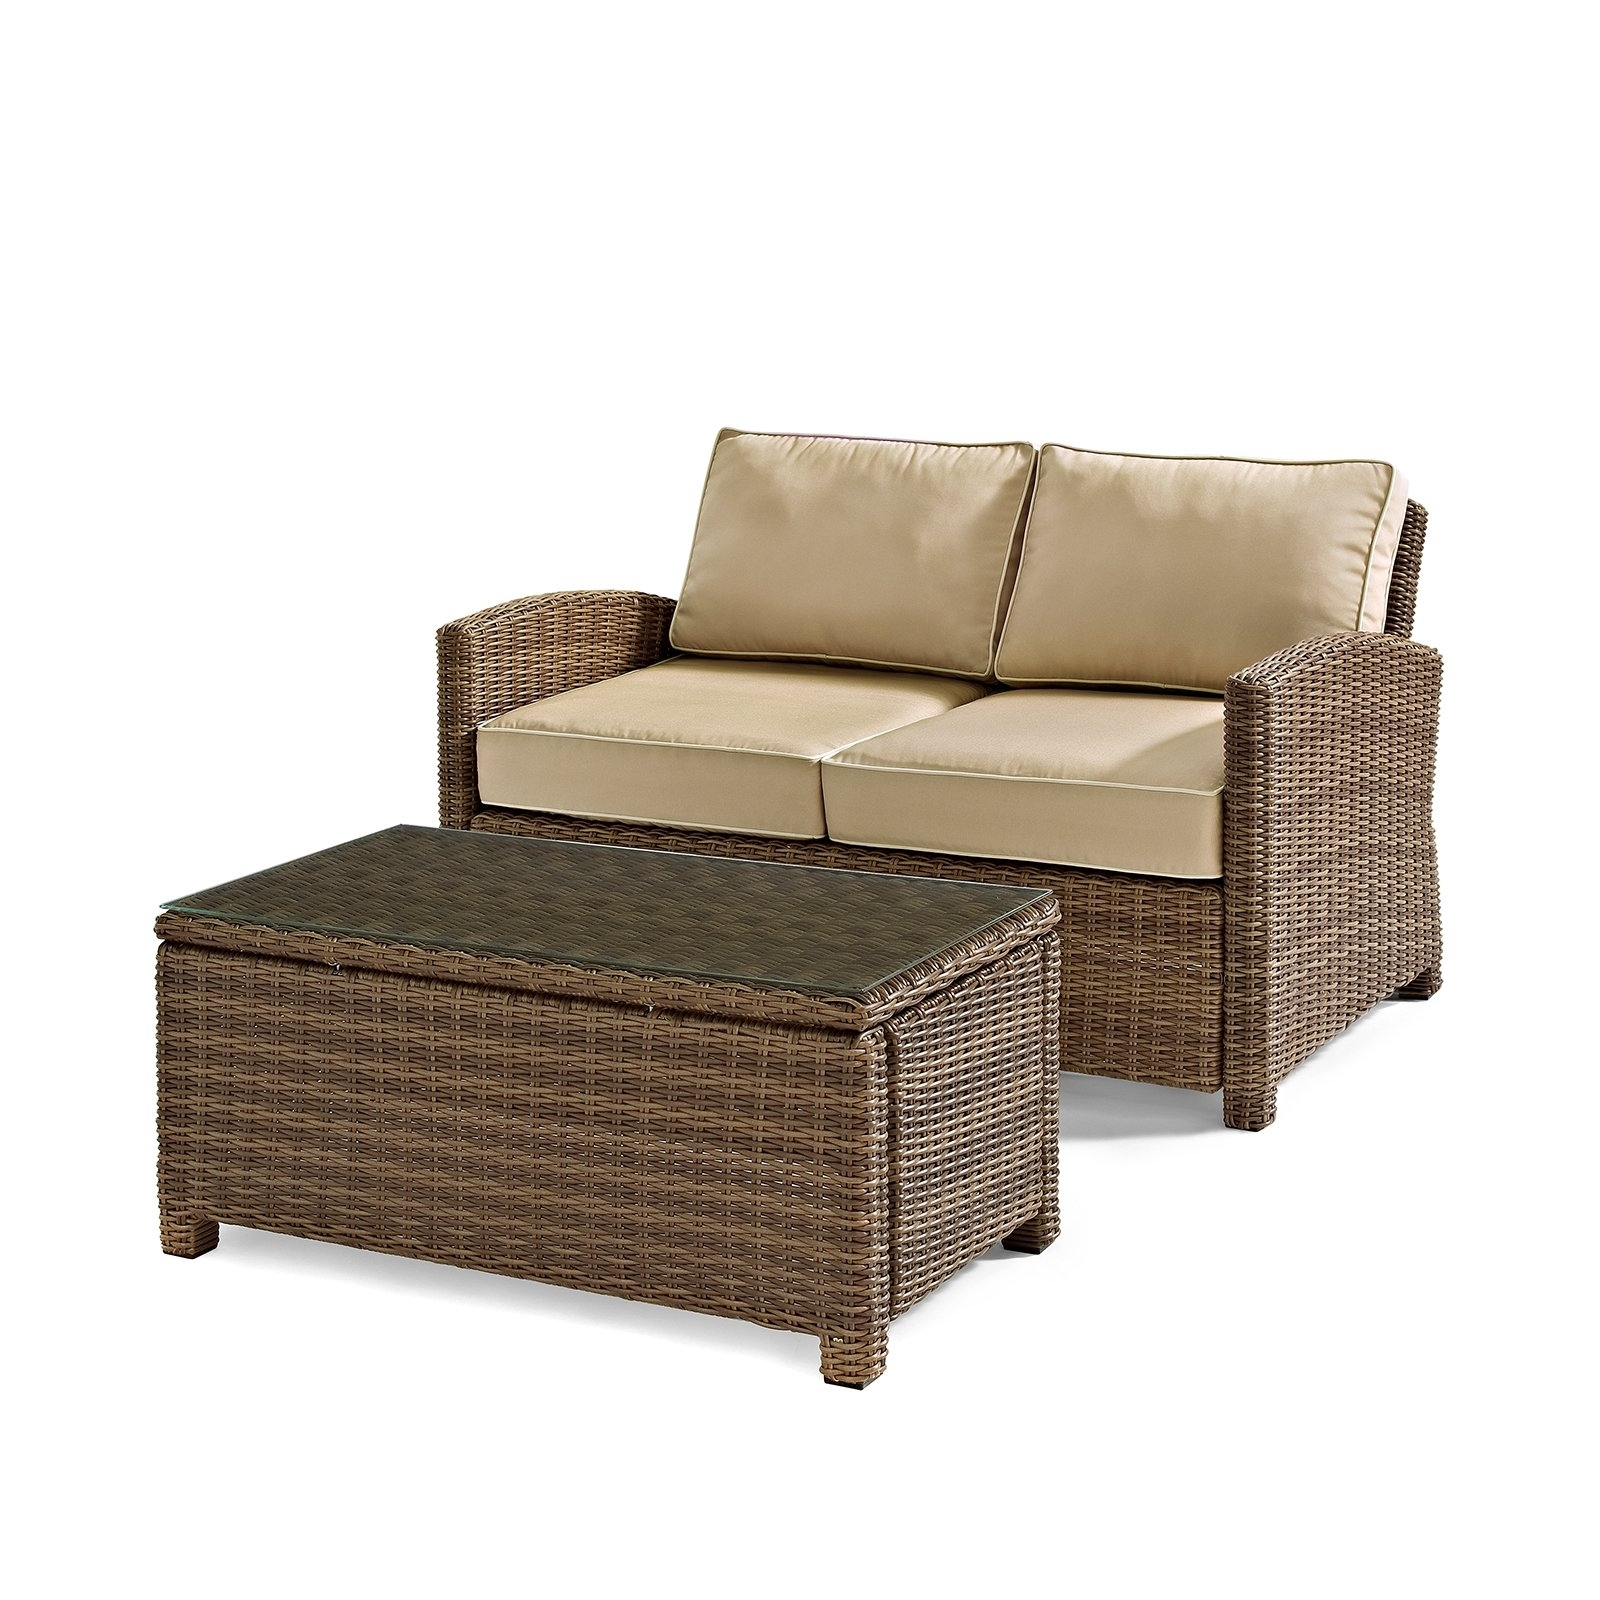 Well Liked Sectional Sofas At Walmart In Outdoor Sectionals – Walmart (View 18 of 20)